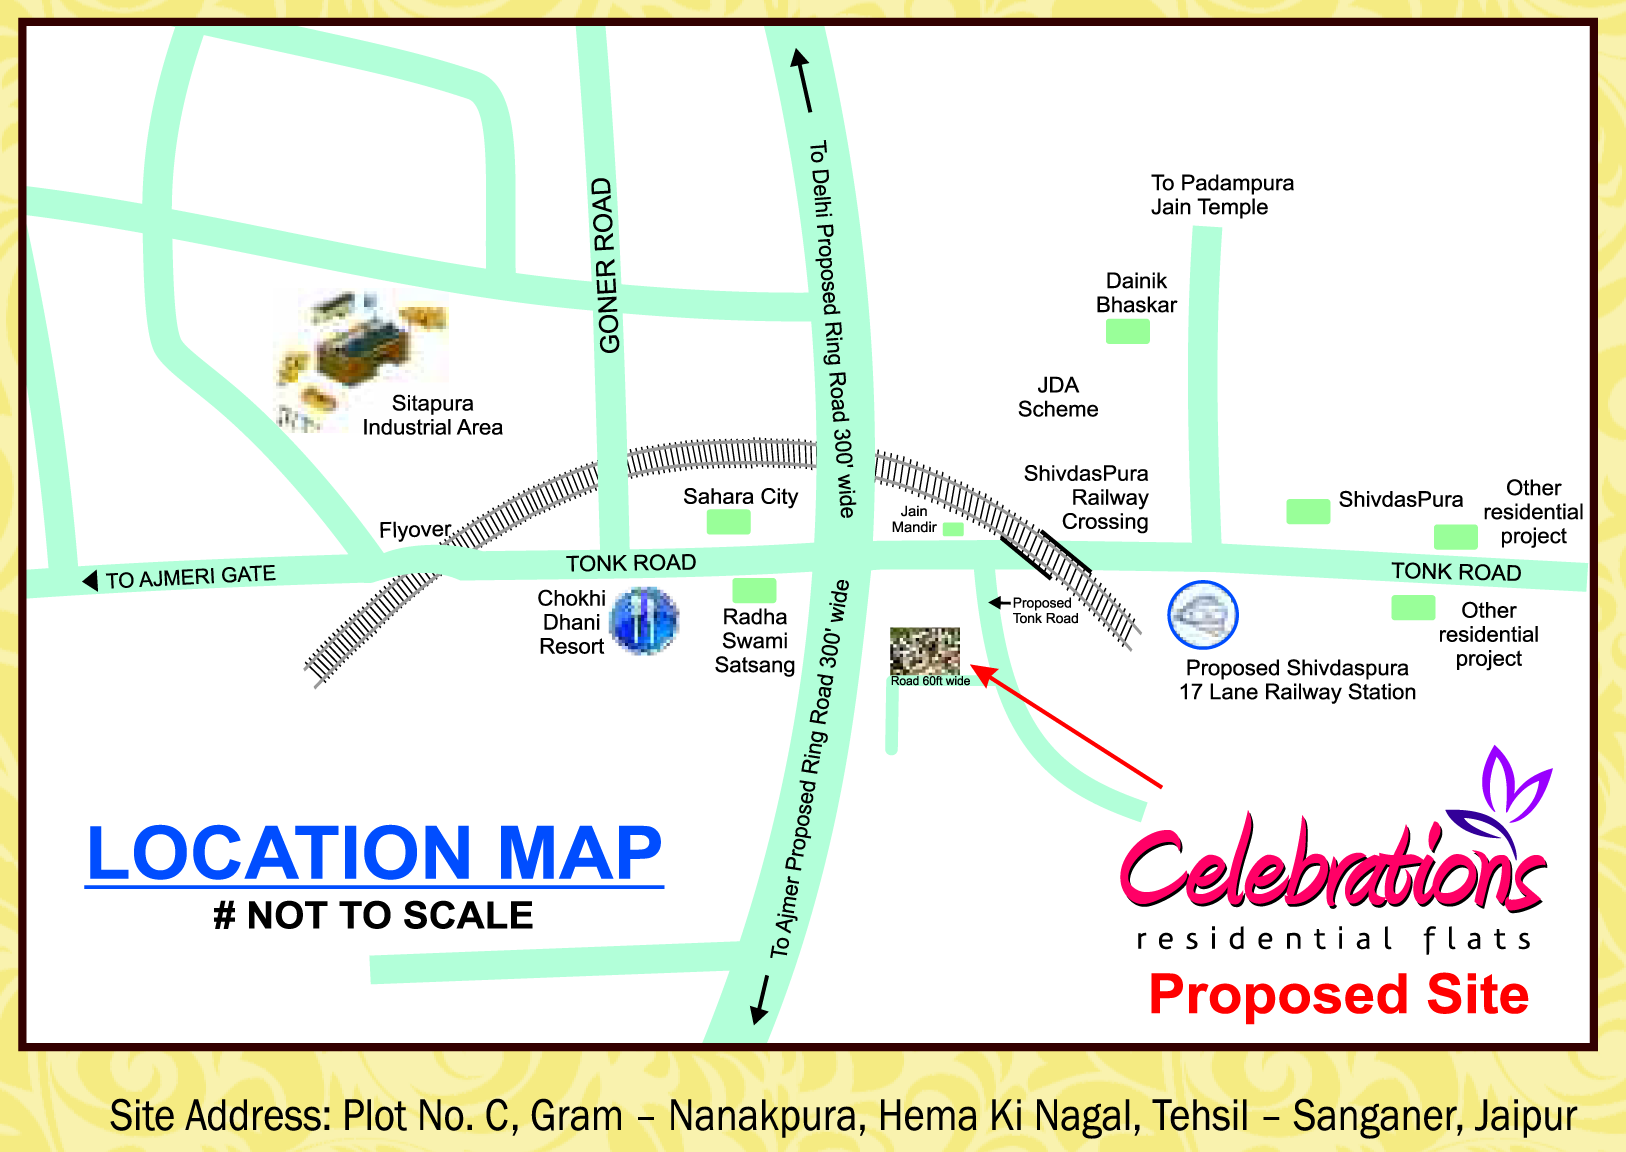 UDB Celebrations - Location Map